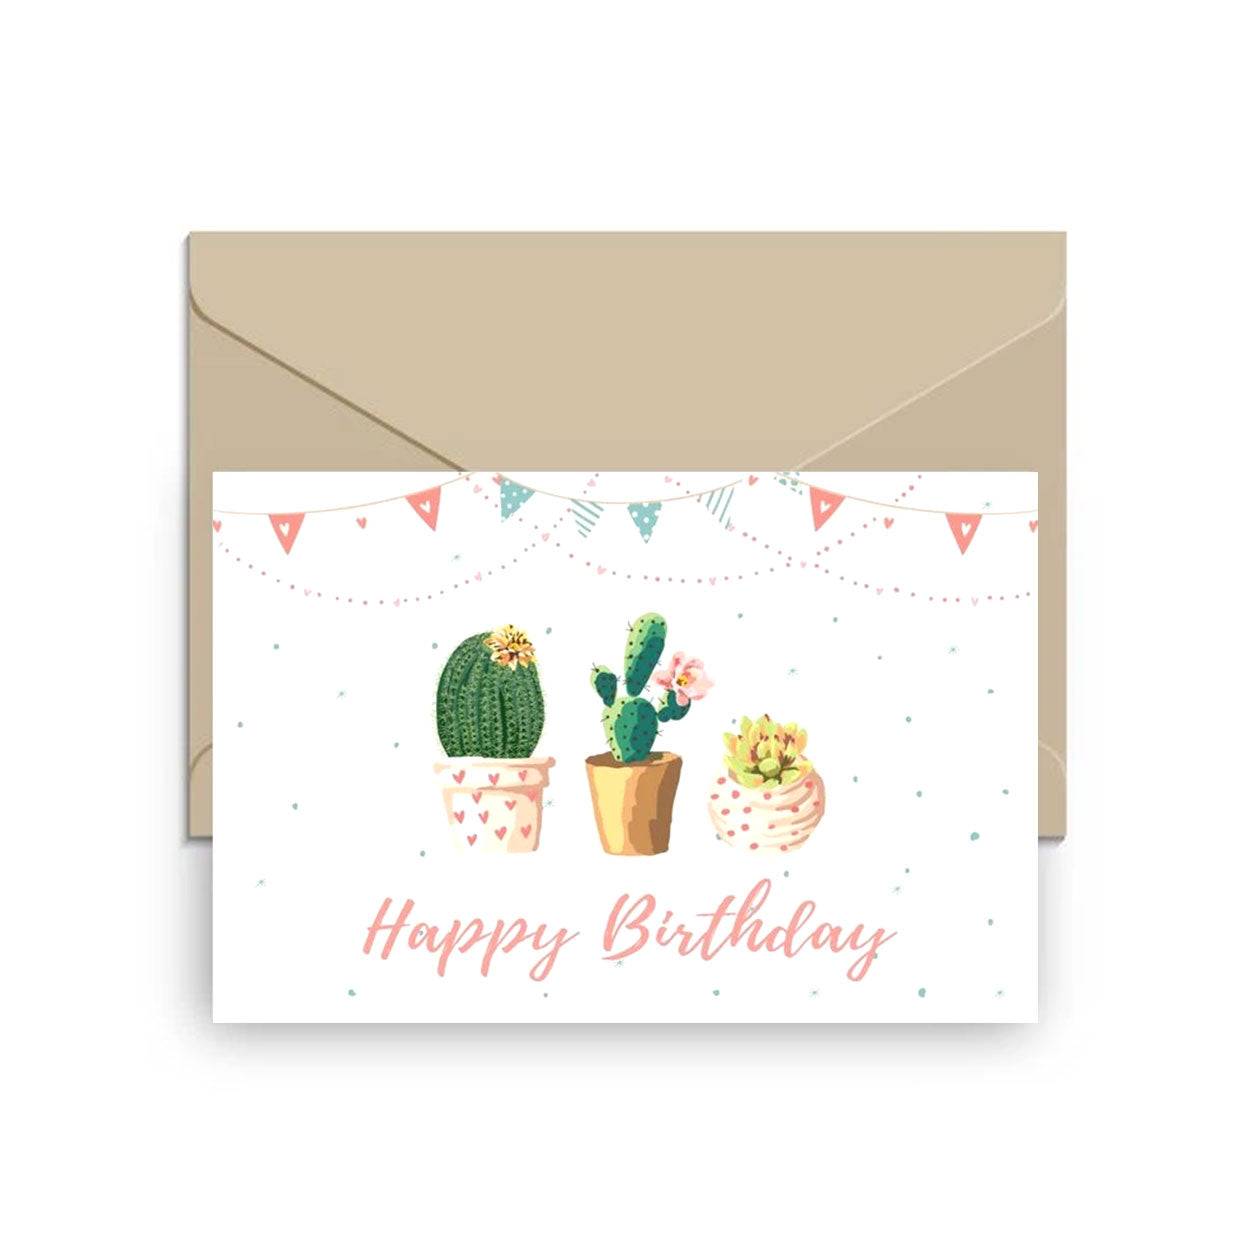 Happy Birthday Cake Card for sale, Succulent Happy Birthday Card for sale, Cactus Birthday Greeting Card, Succulents Greeting Card, Succulents Gift Ideas